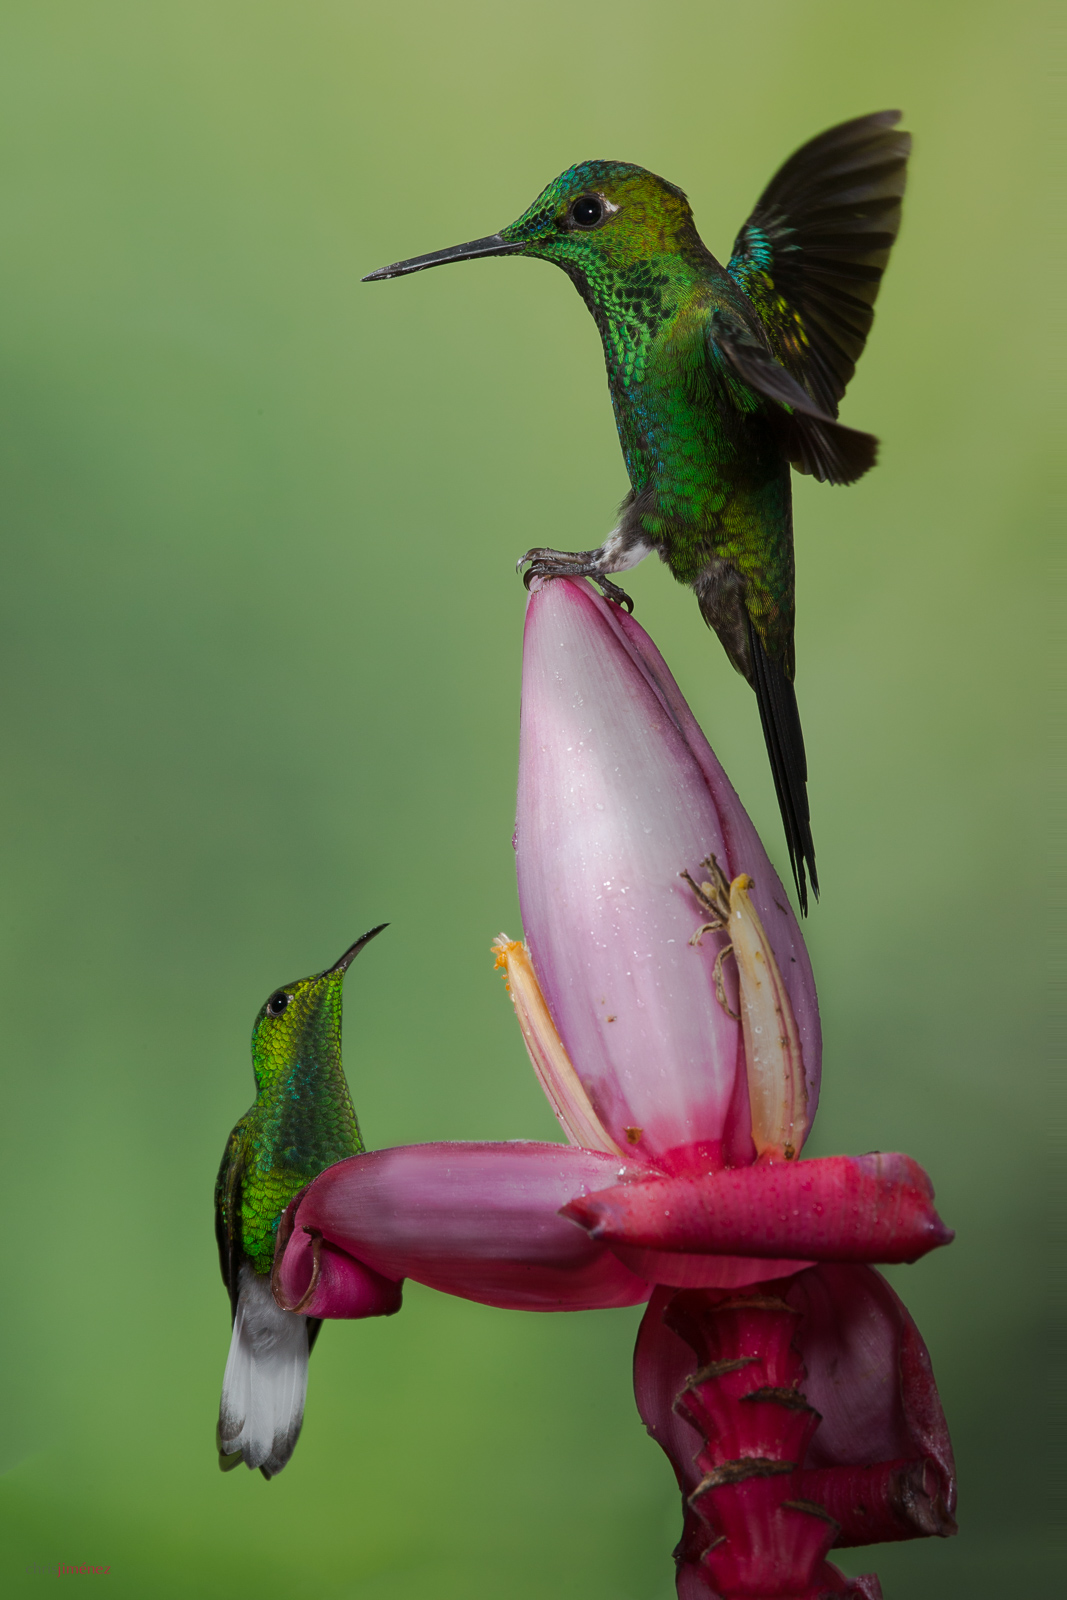 Two Hummingbirds Green-crowned Brilliant (Heliodoxa jacula) and Coppery-headed Emerald (Elvira cupreiceps) perched on a banana flower at the highlands of Costa Rica.